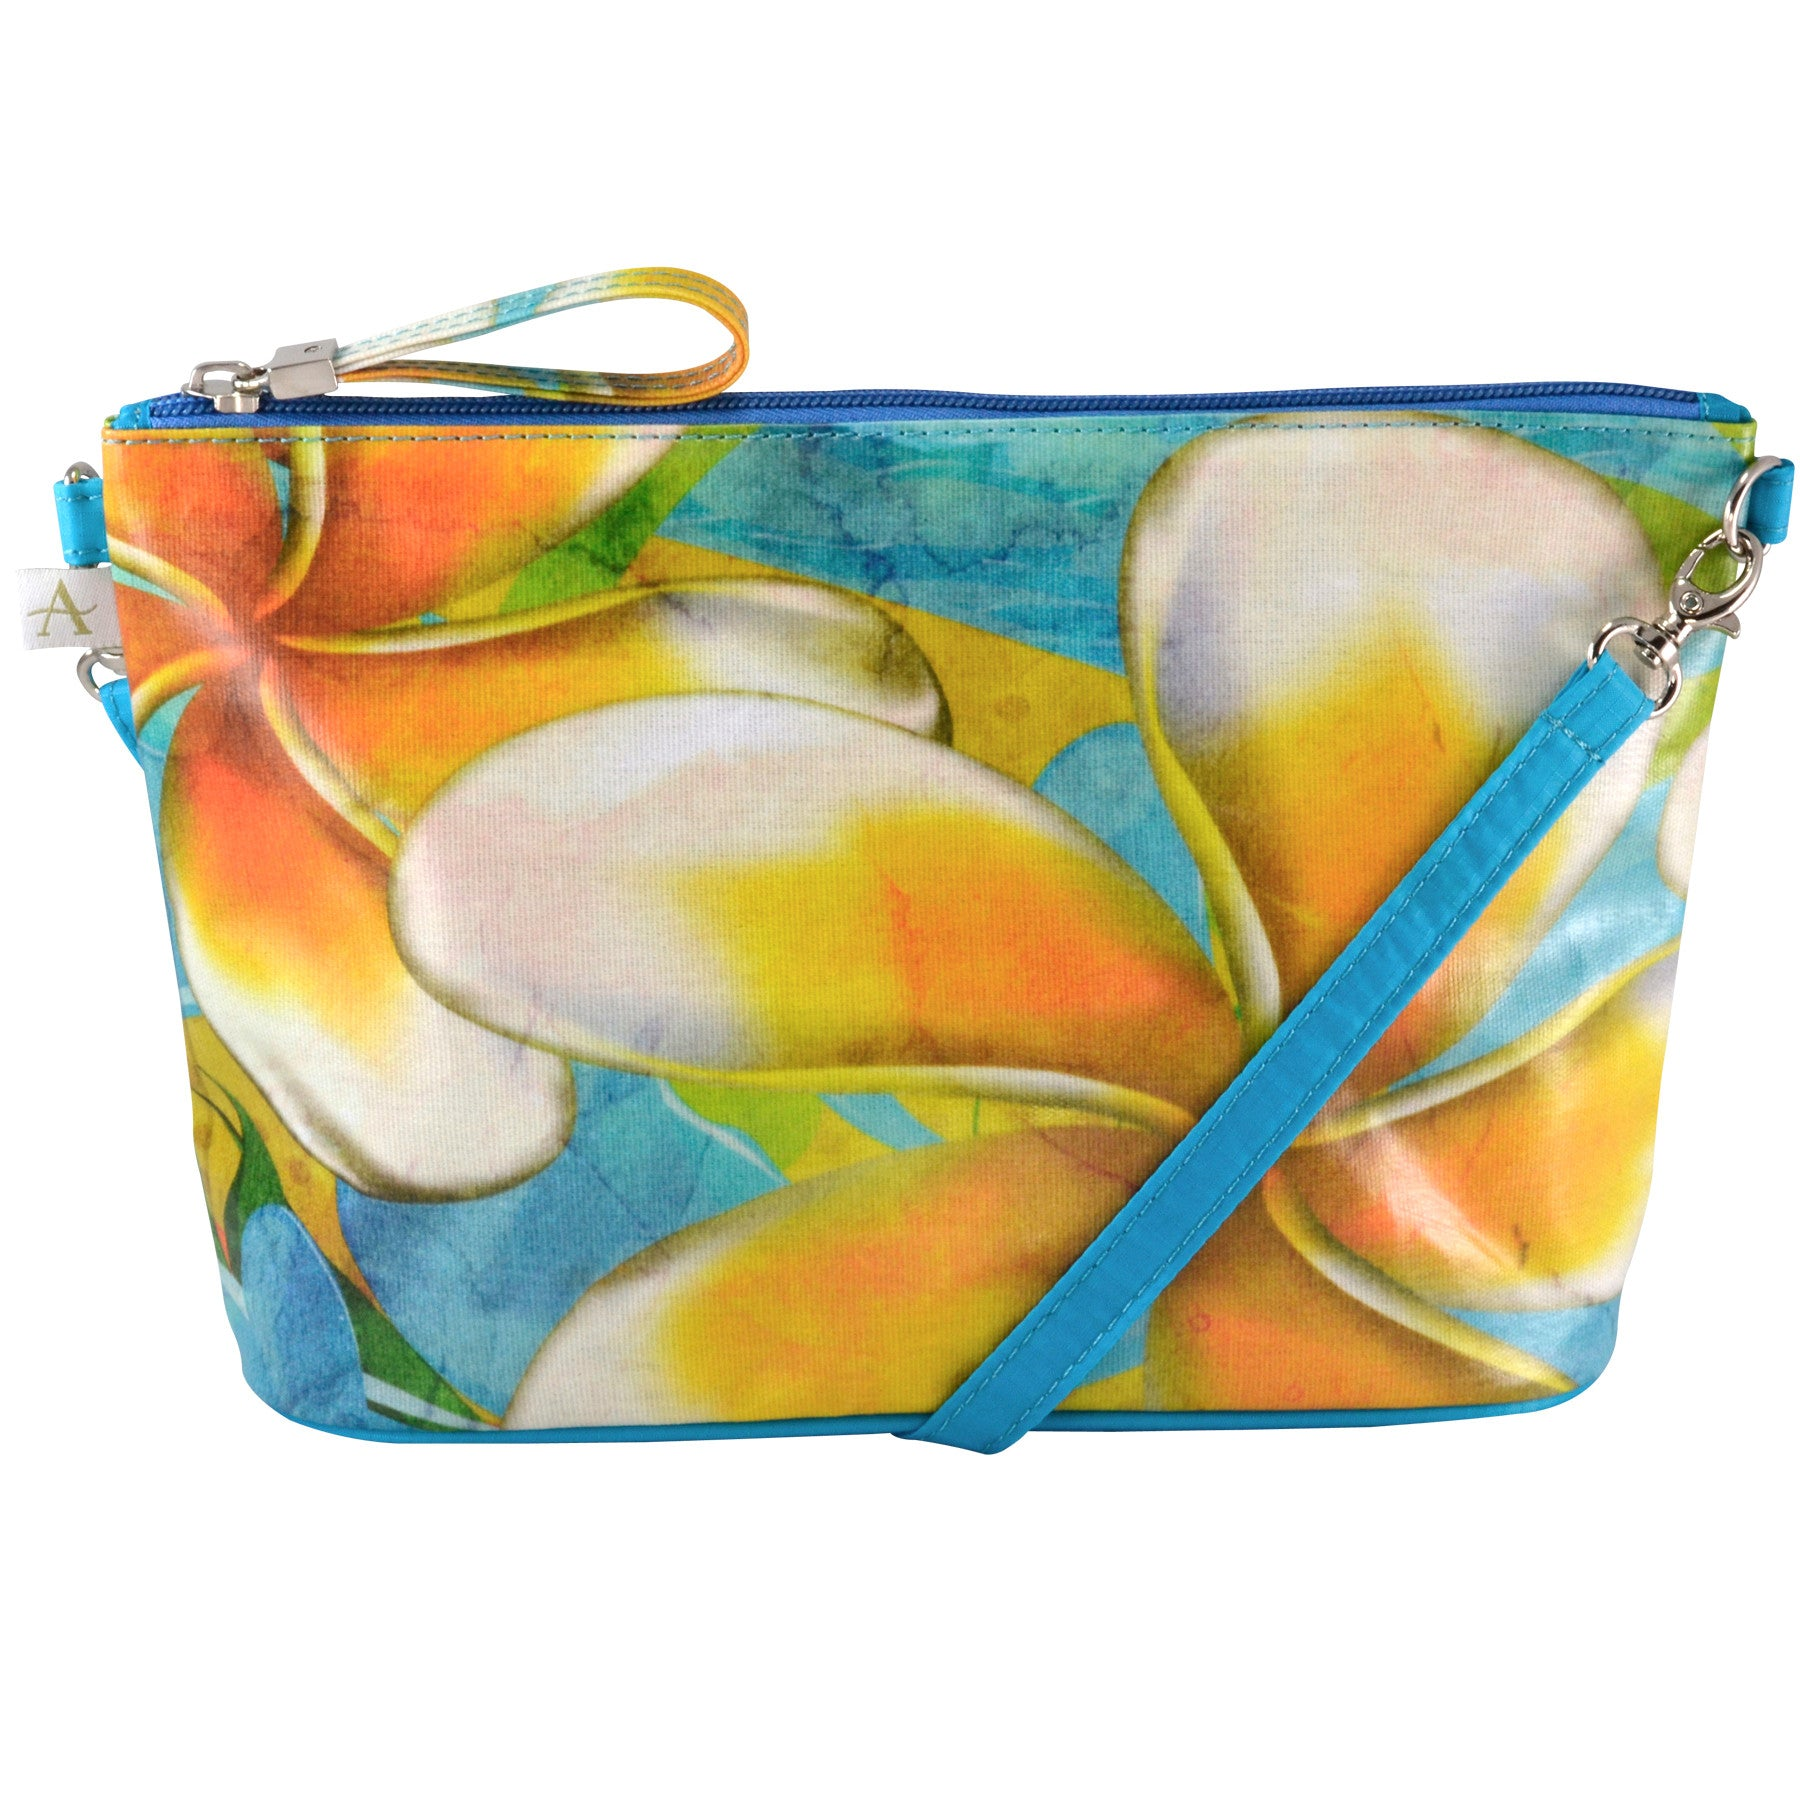 Alicia Klein small crossbody bag, Plumeria